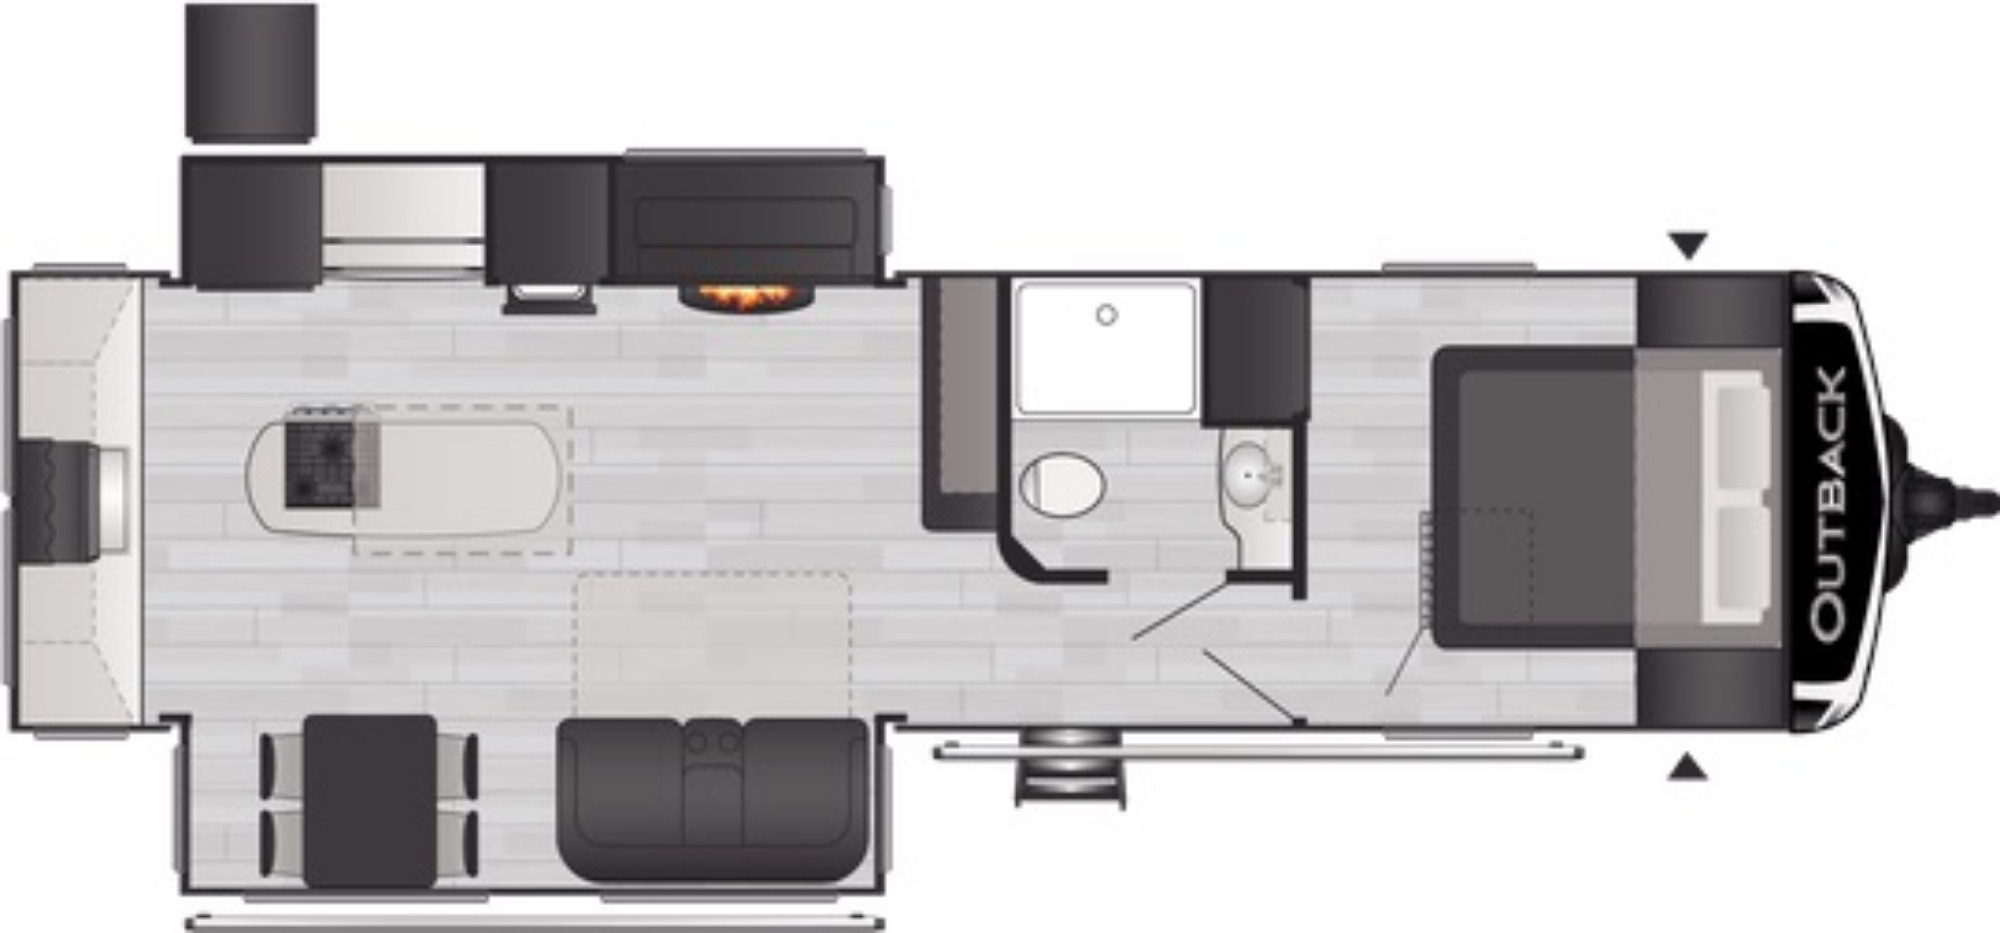 View Floor Plan for 2021 KEYSTONE OUTBACK 300ML